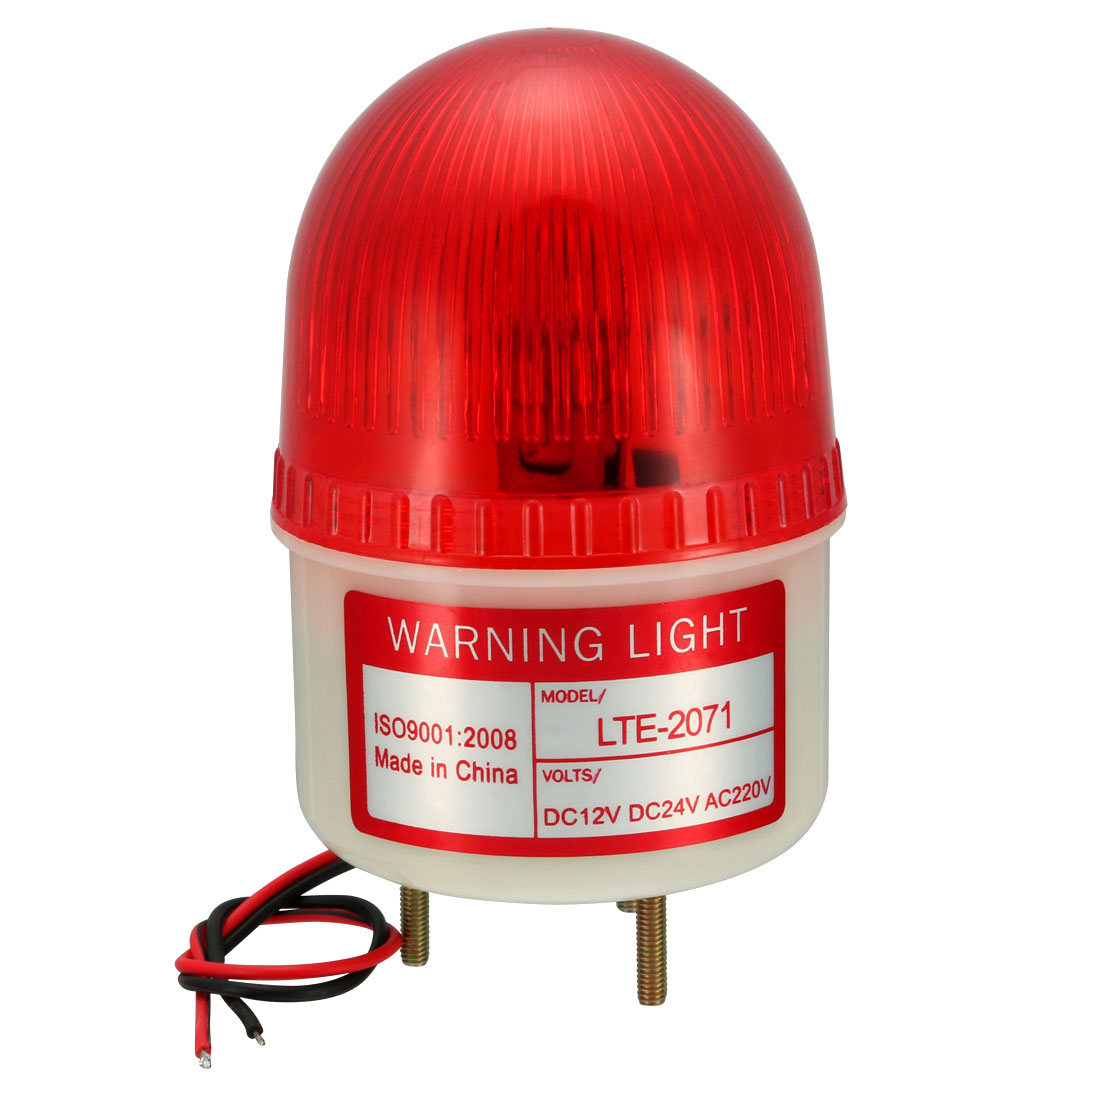 Warning Light Bulb Flashing Signal Alarm Lamp AC 220V Red LTE-2071